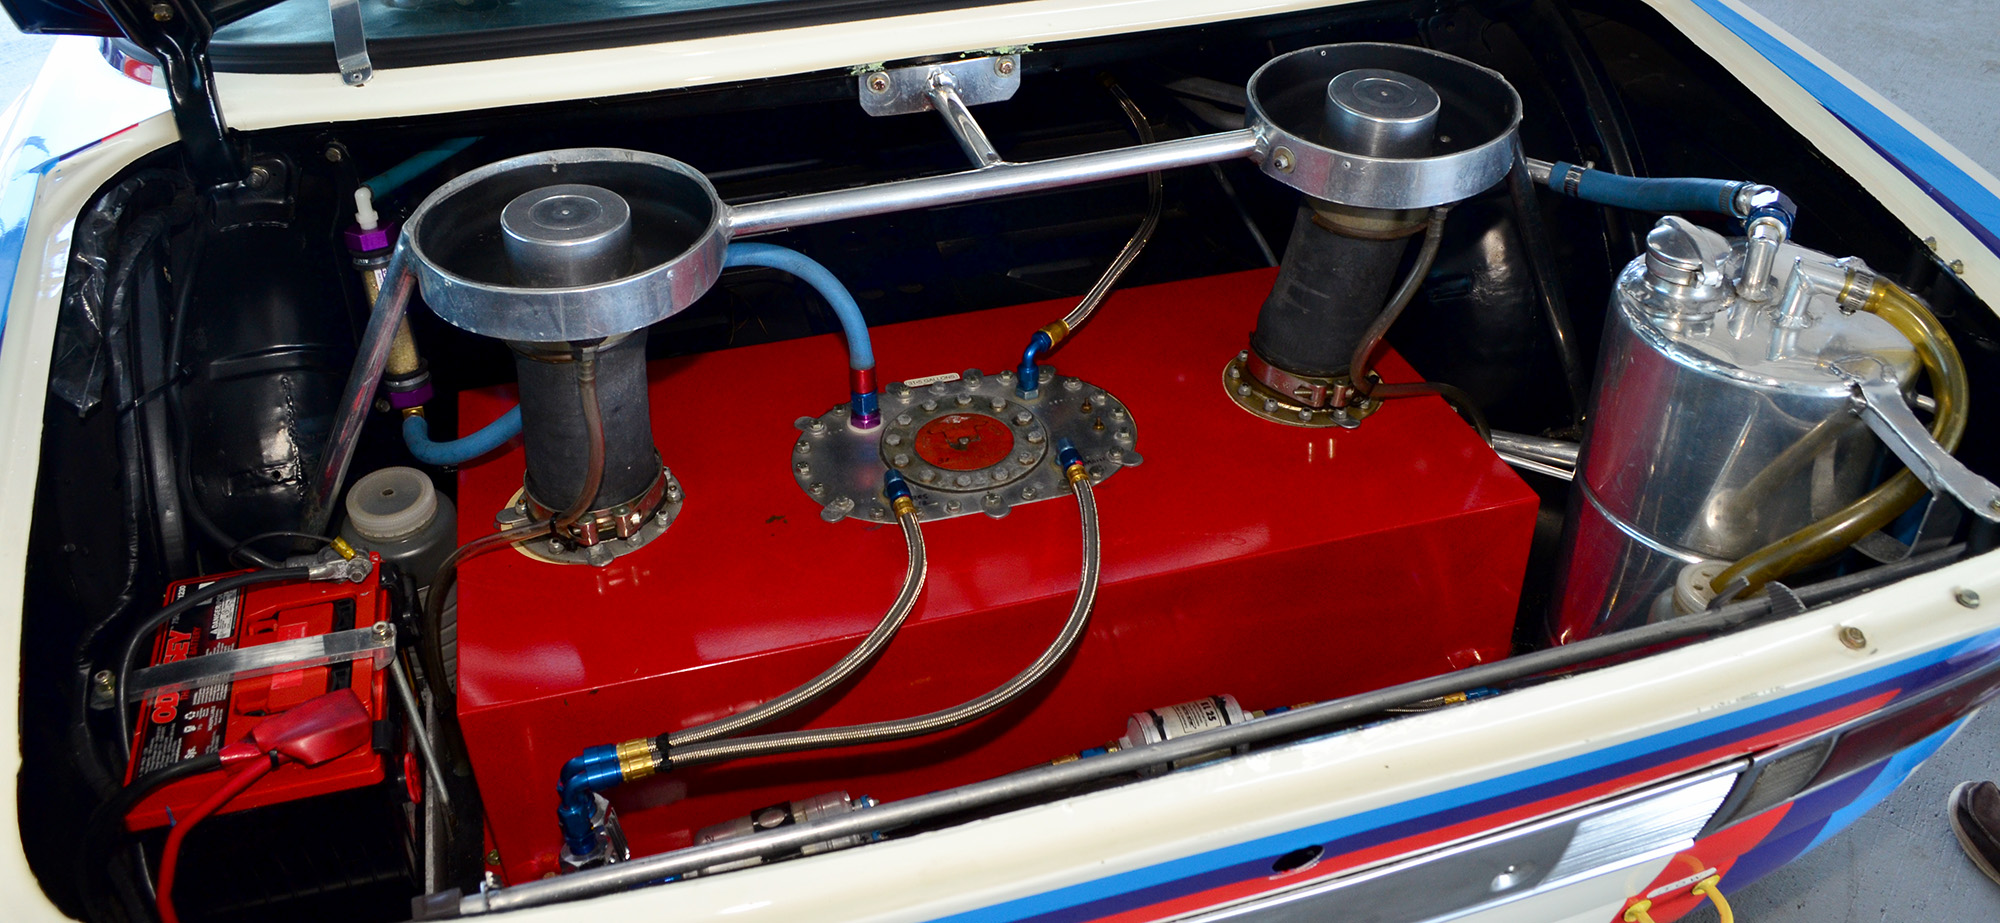 What Separates a Race Fuel From a Street Fuel? | Articles